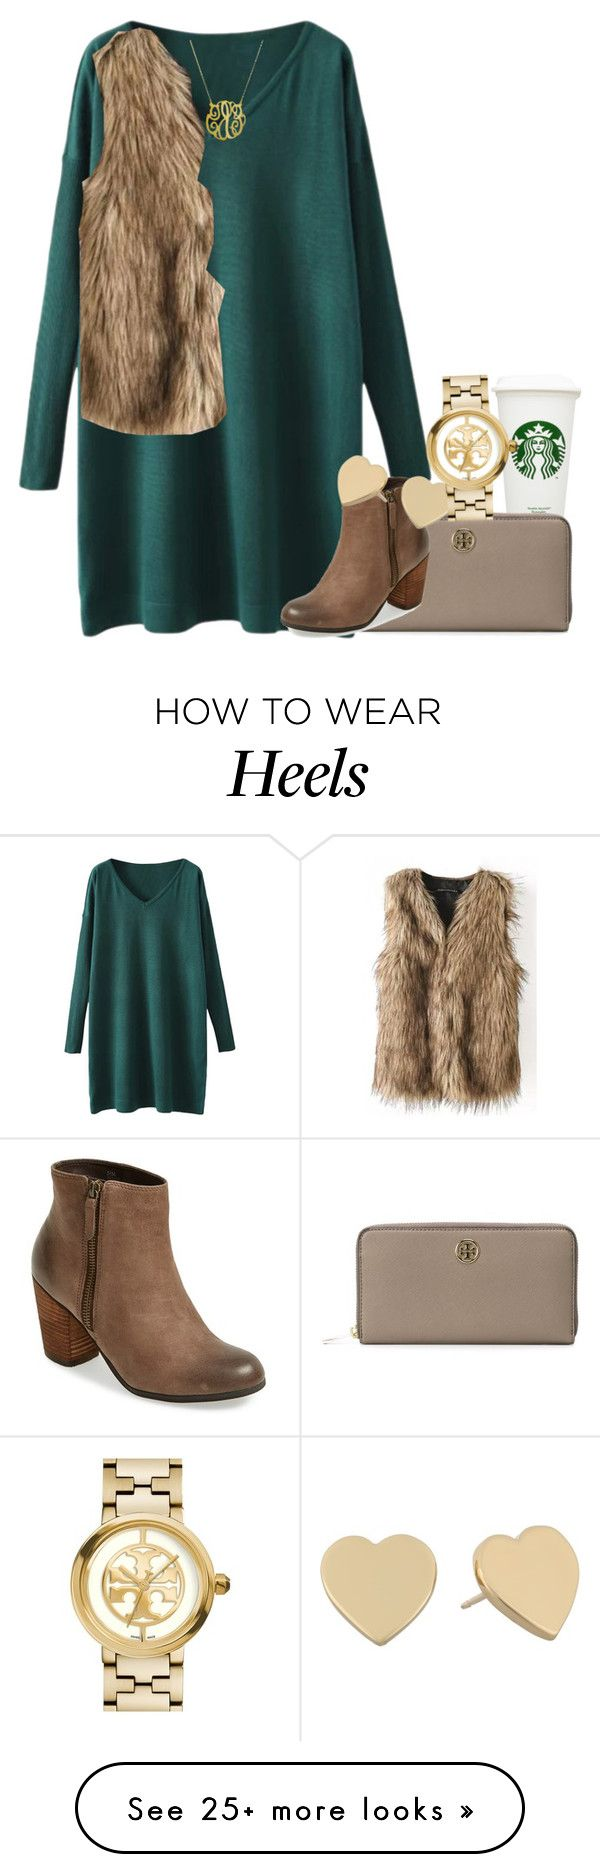 """""""head over heels"""" by econgdon on Polyvore featuring Tory Burch, BP. and Kate Spade"""